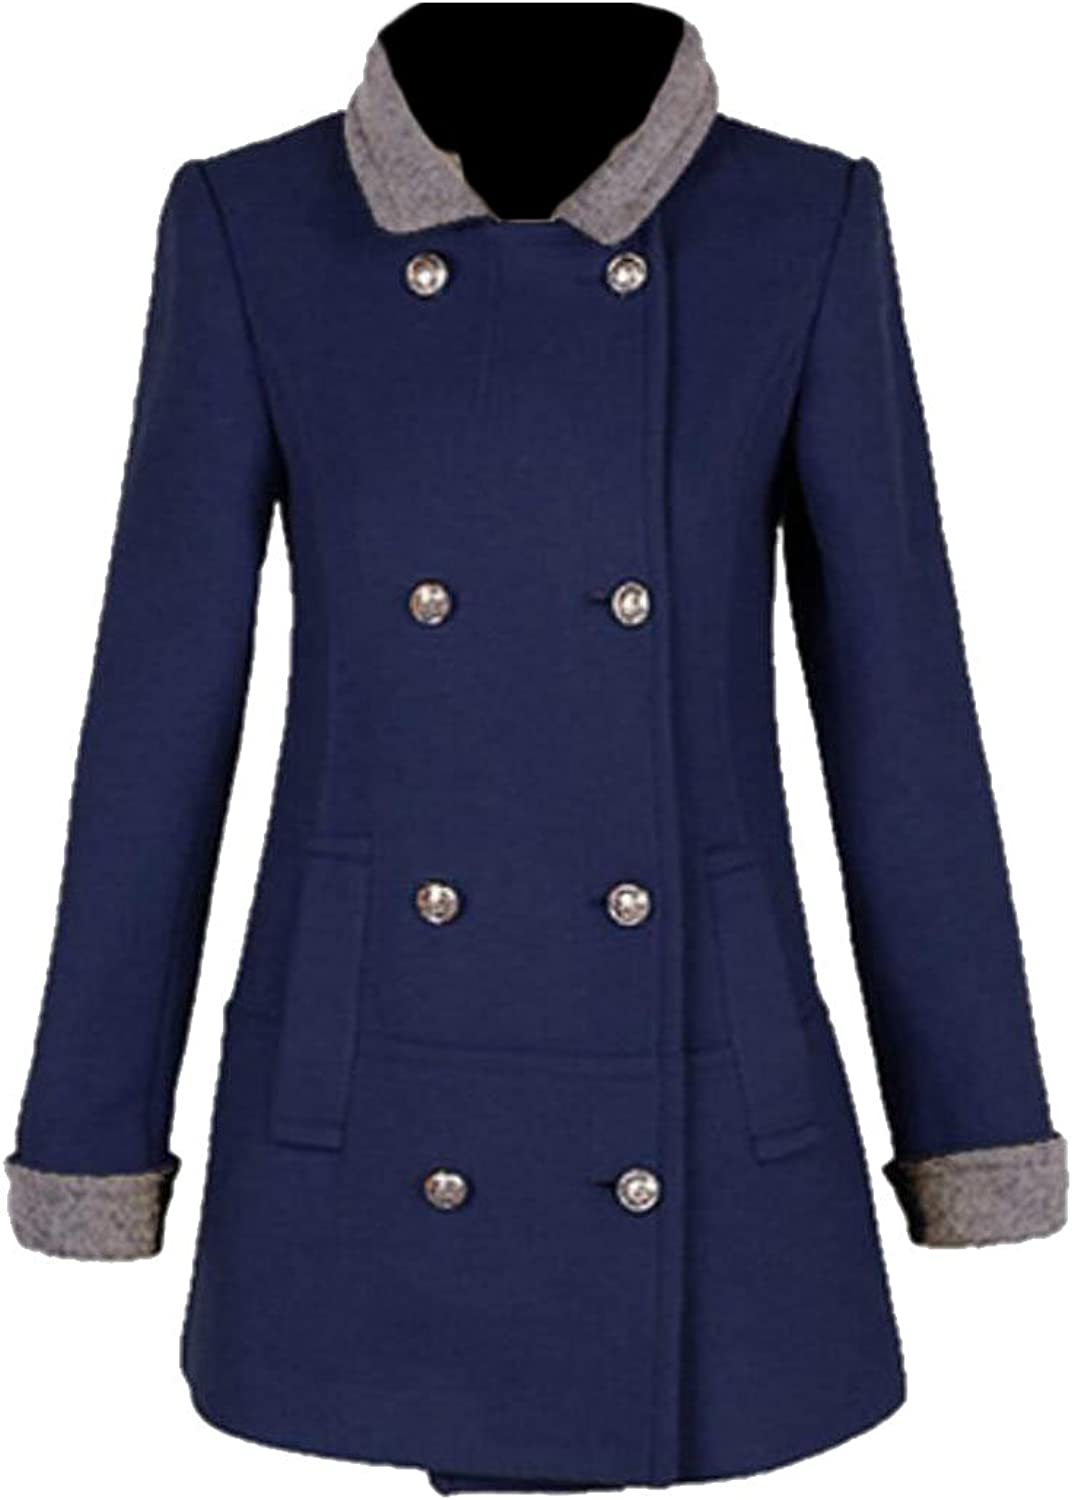 GAGA Women's Fashion Casual Fit Double Breasted Wool Overcoat Coats